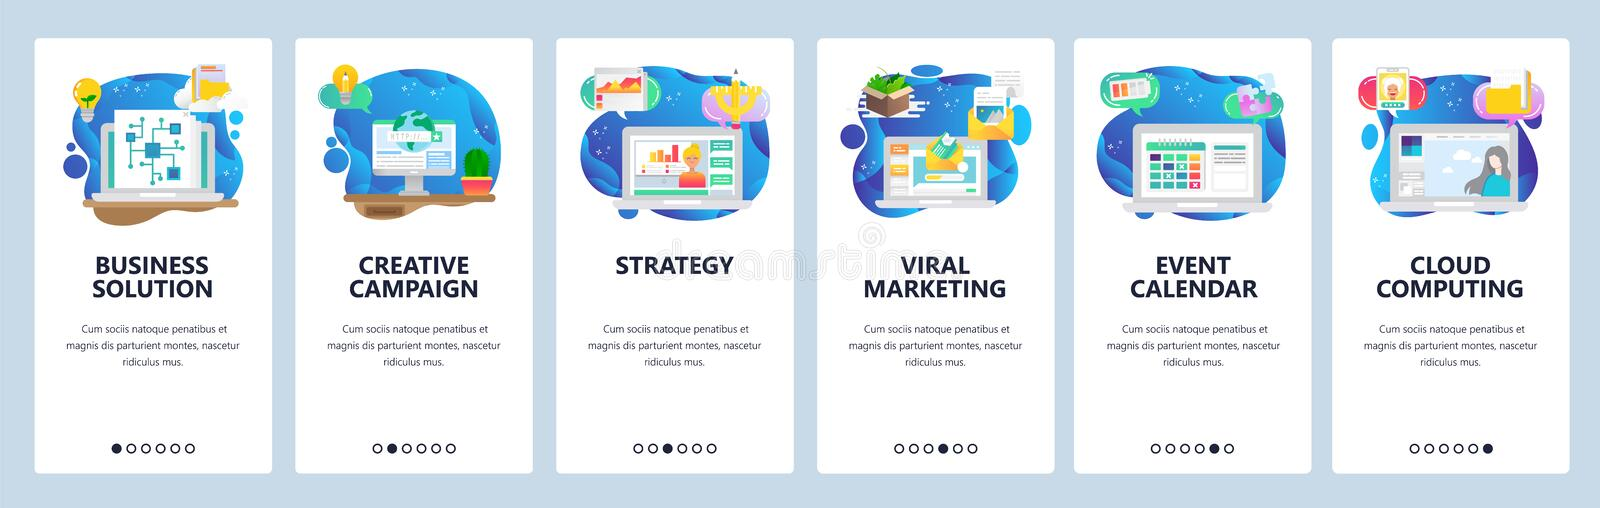 De mobiele toepassing onboarding schermen businessplan en strategie, virale marketing, e-mail, gebeurteniskalender Menu vectorban royalty-vrije illustratie